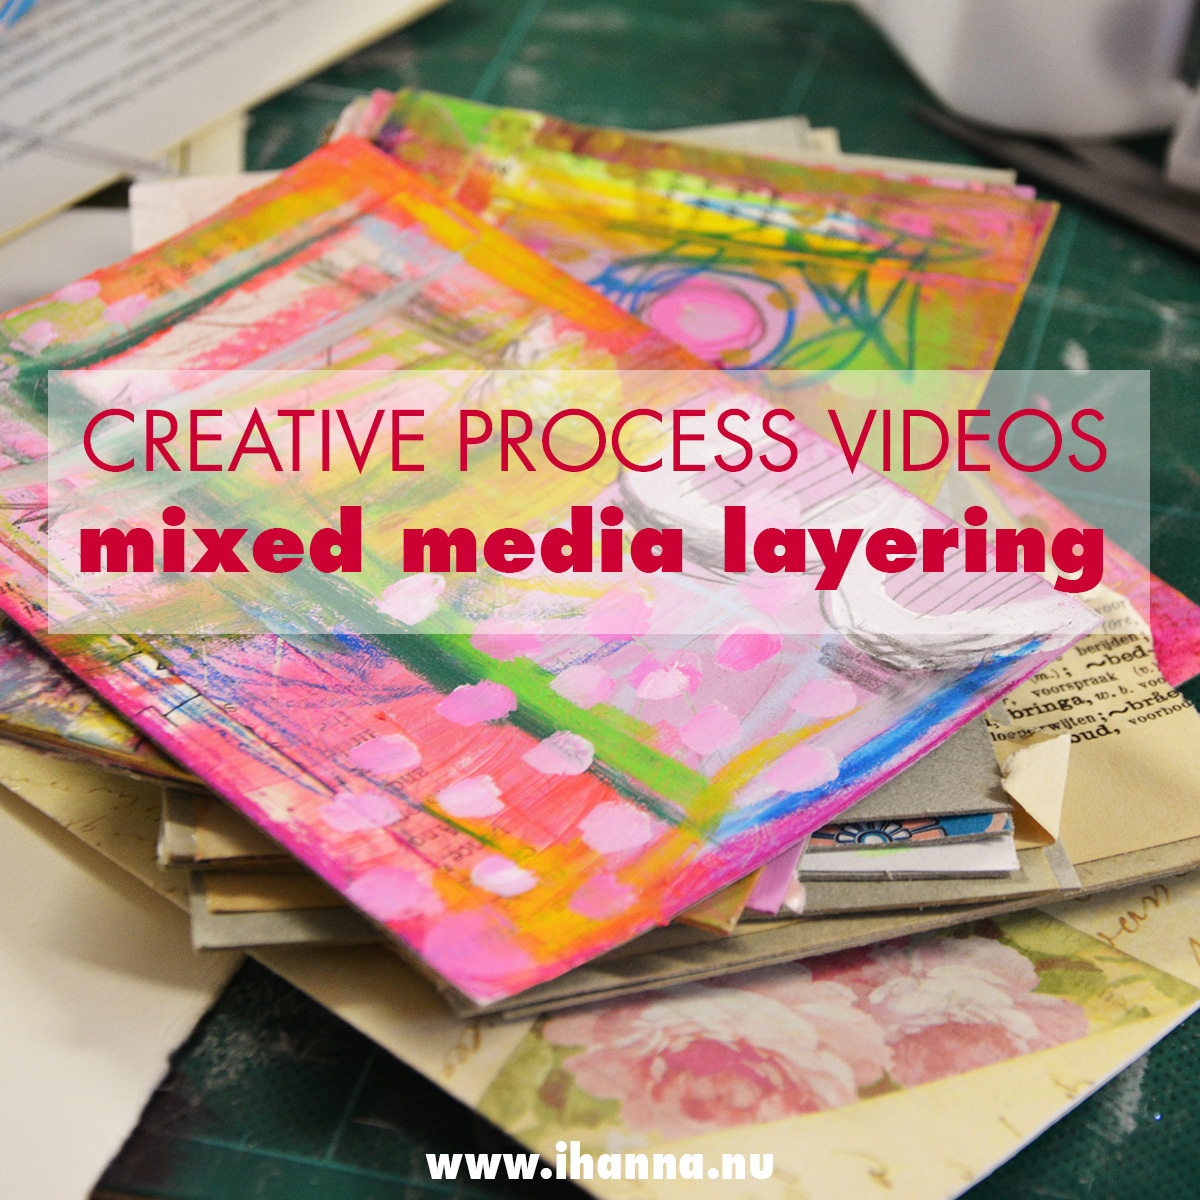 Watch iHanna create mixed media layers in this series of videos #creativity